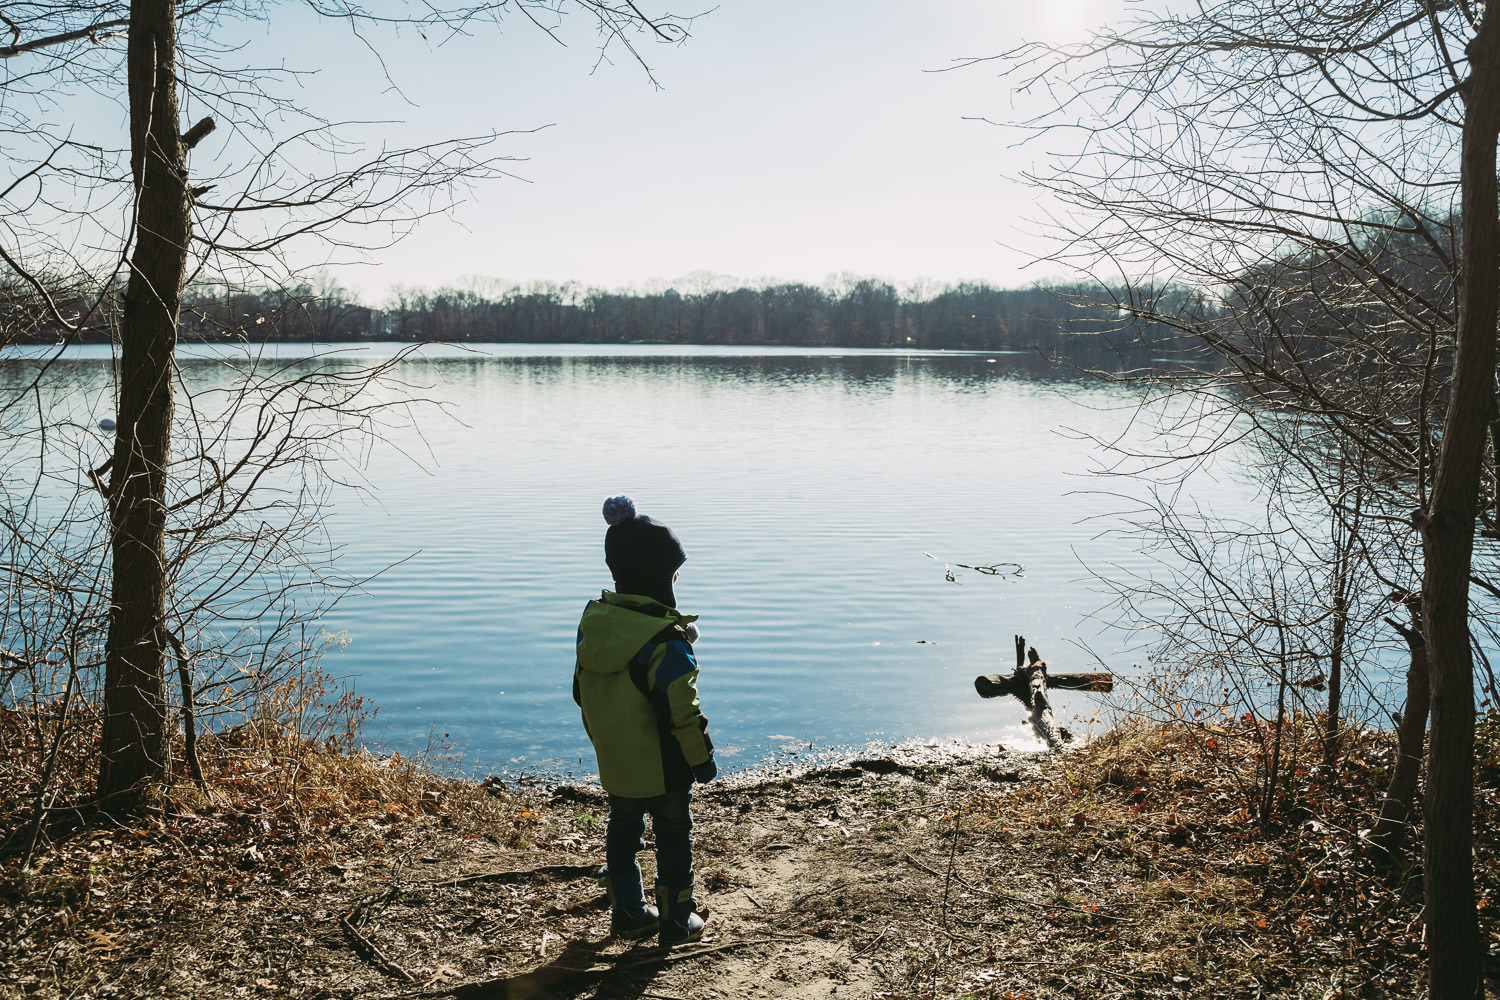 A little boy looks out at Hempstead Lake.